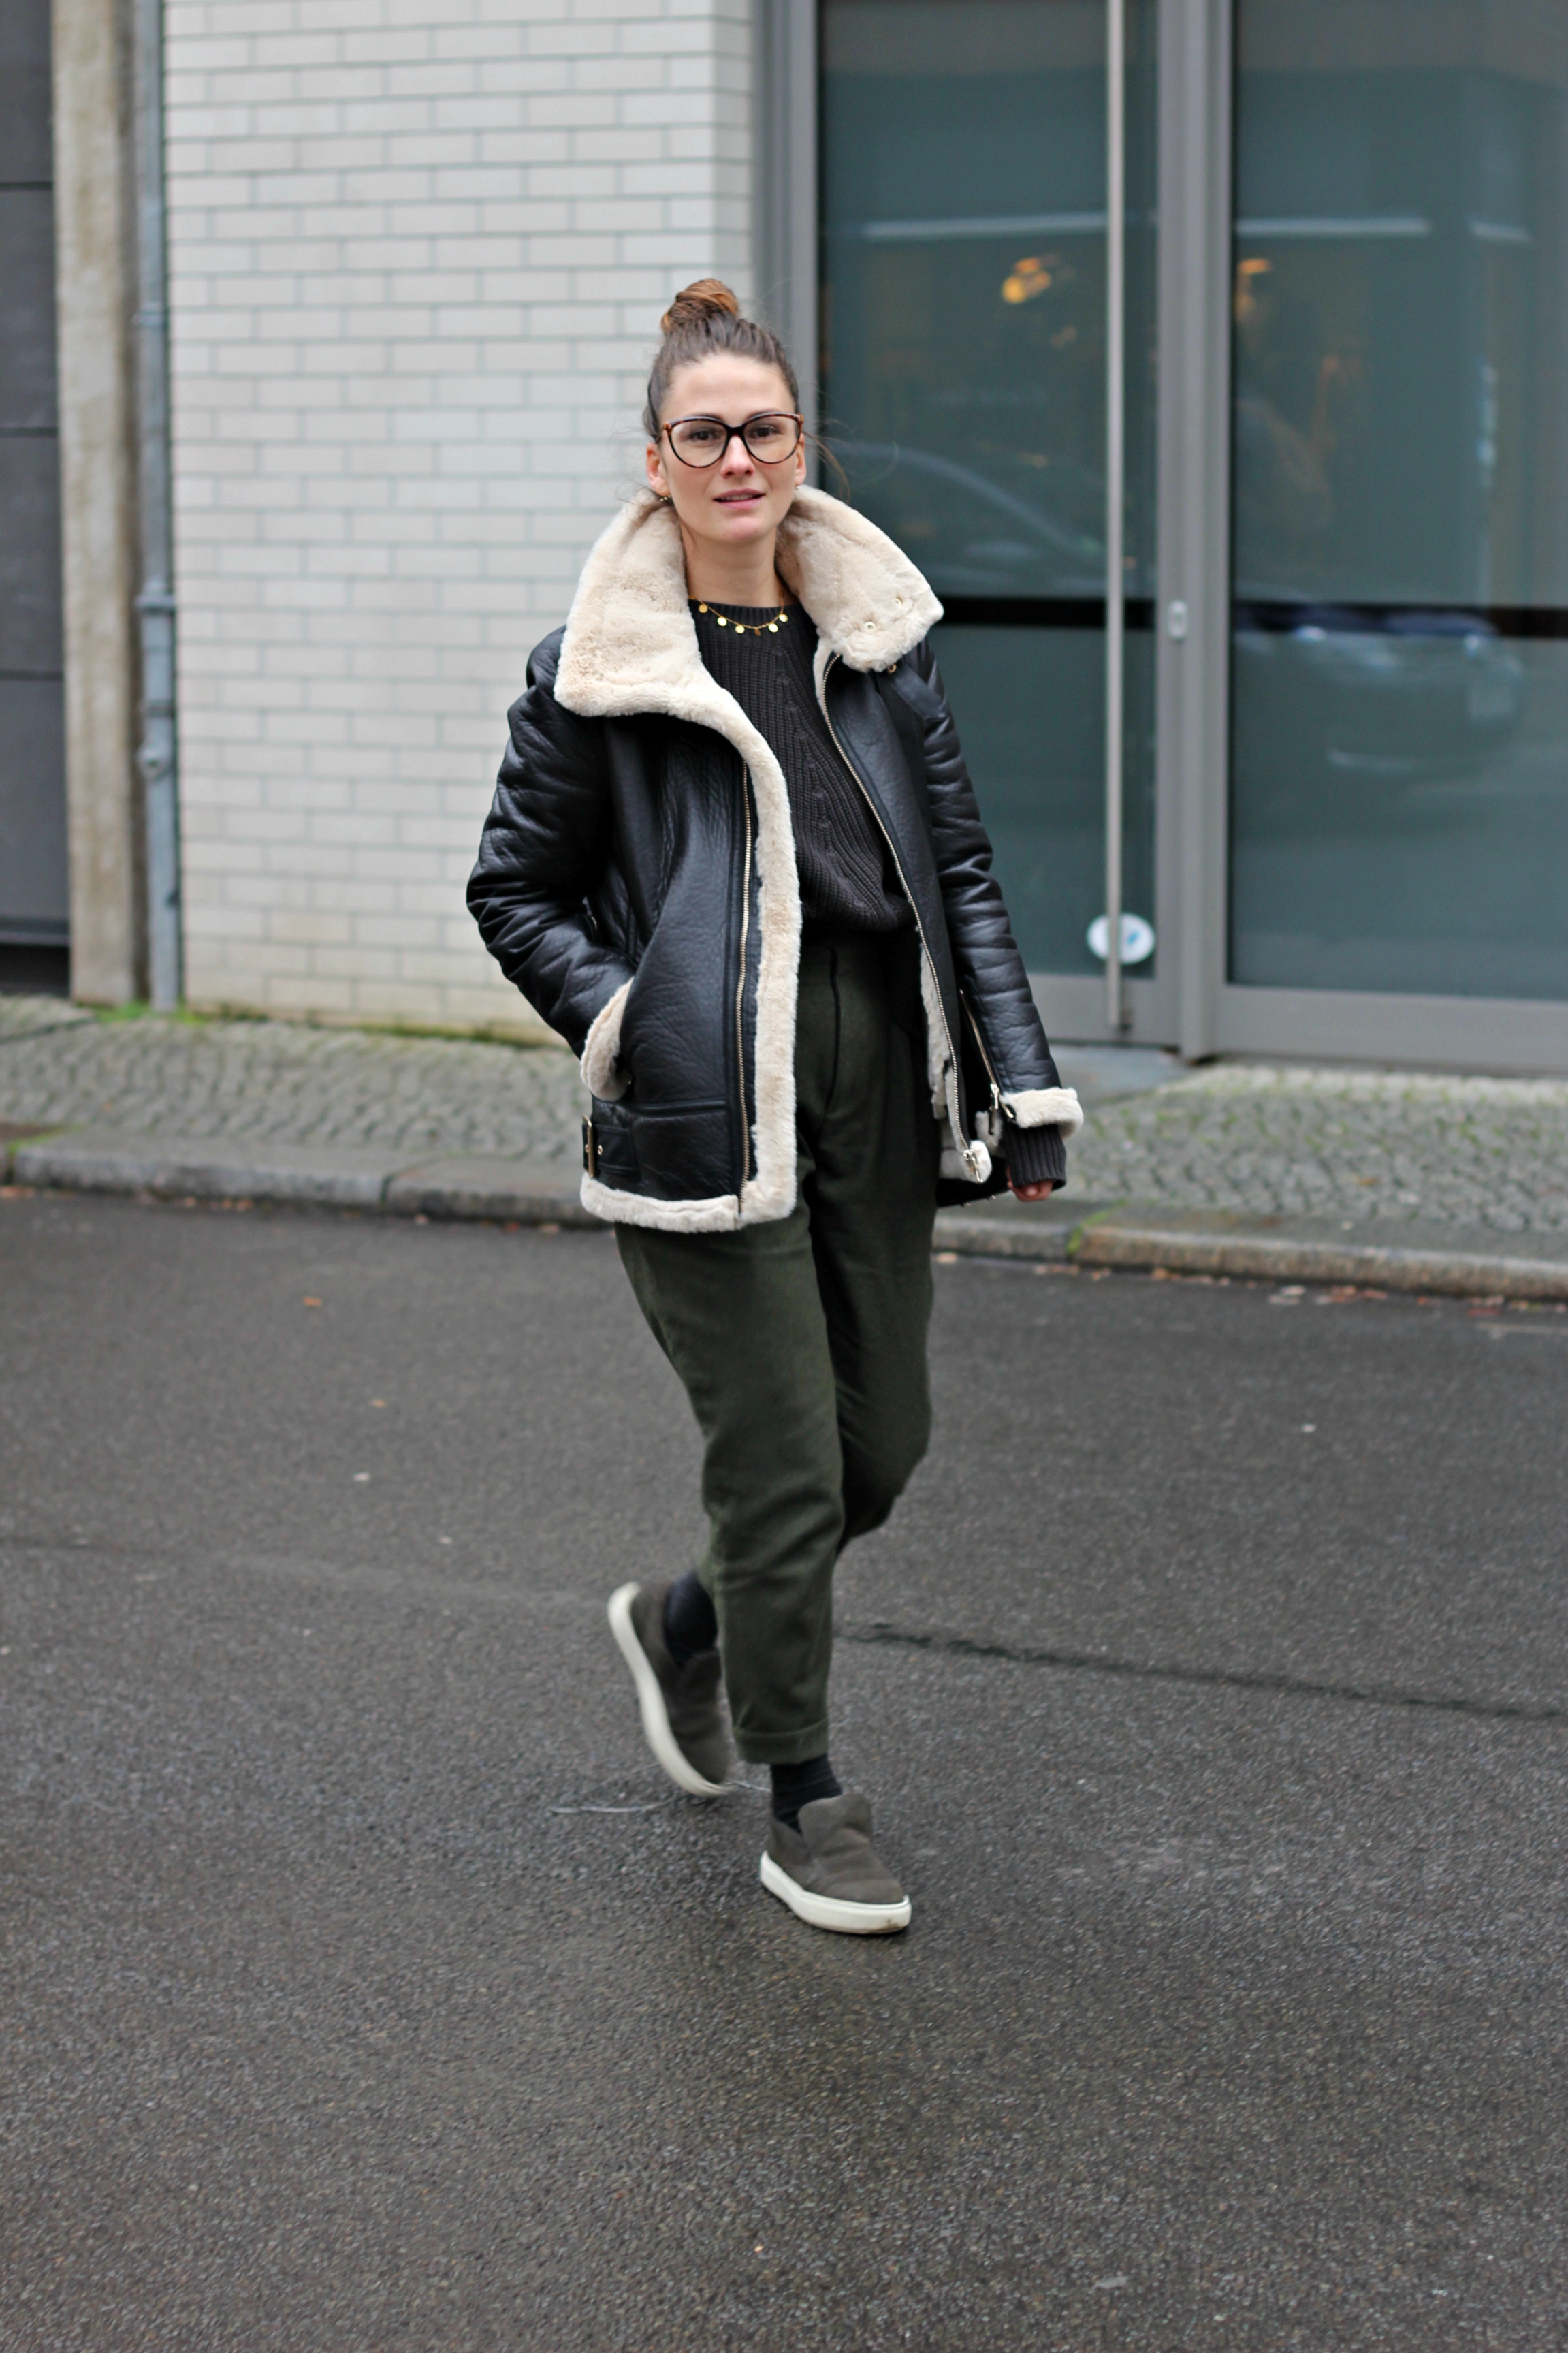 annaporter-shearling-jacket-winter-look-5